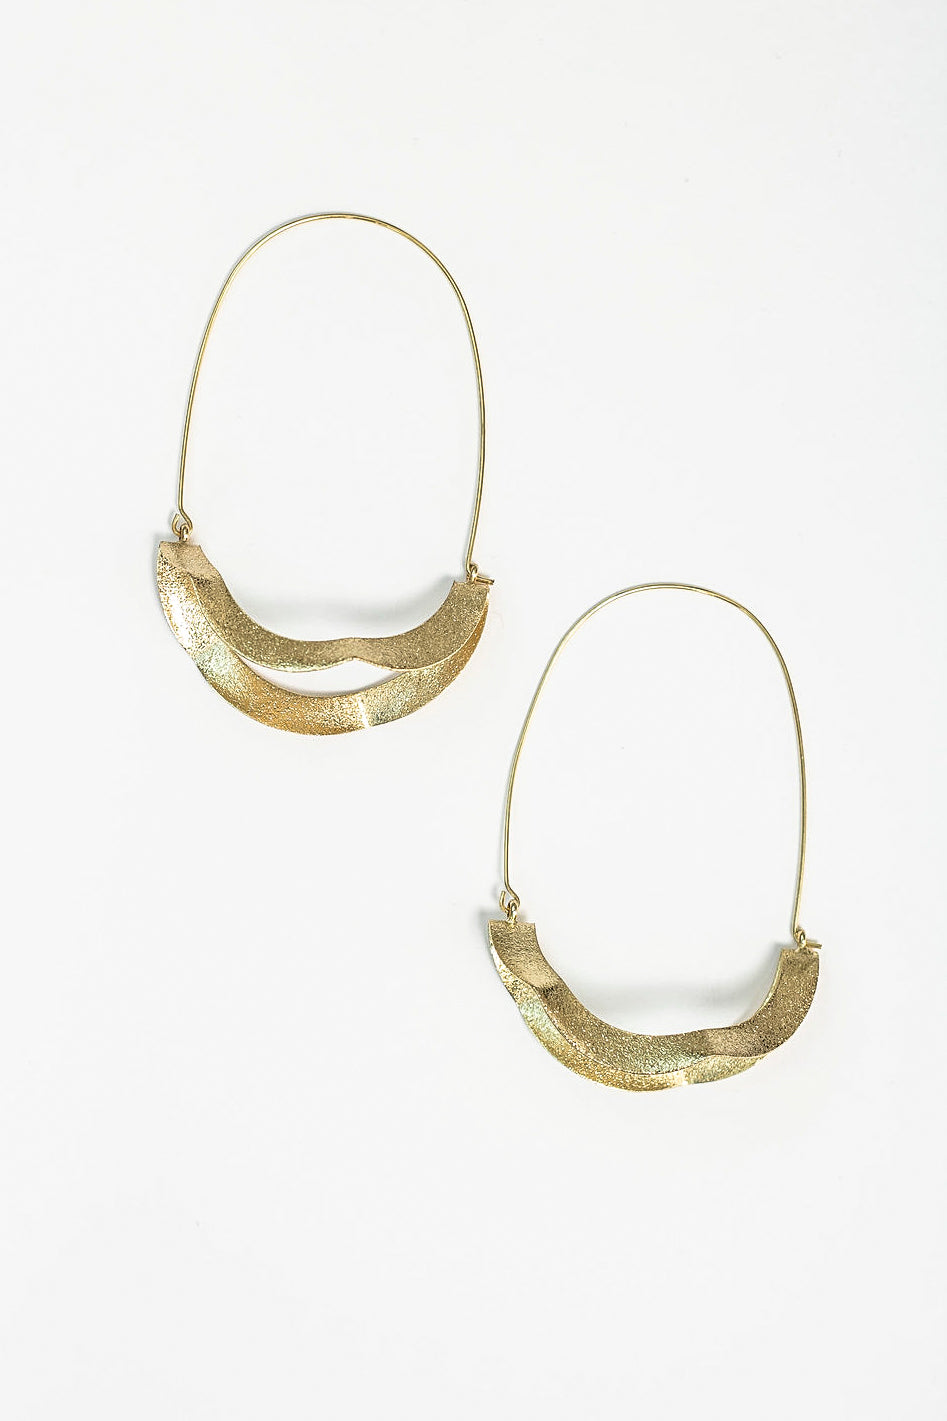 Golden twisted hoop earrings